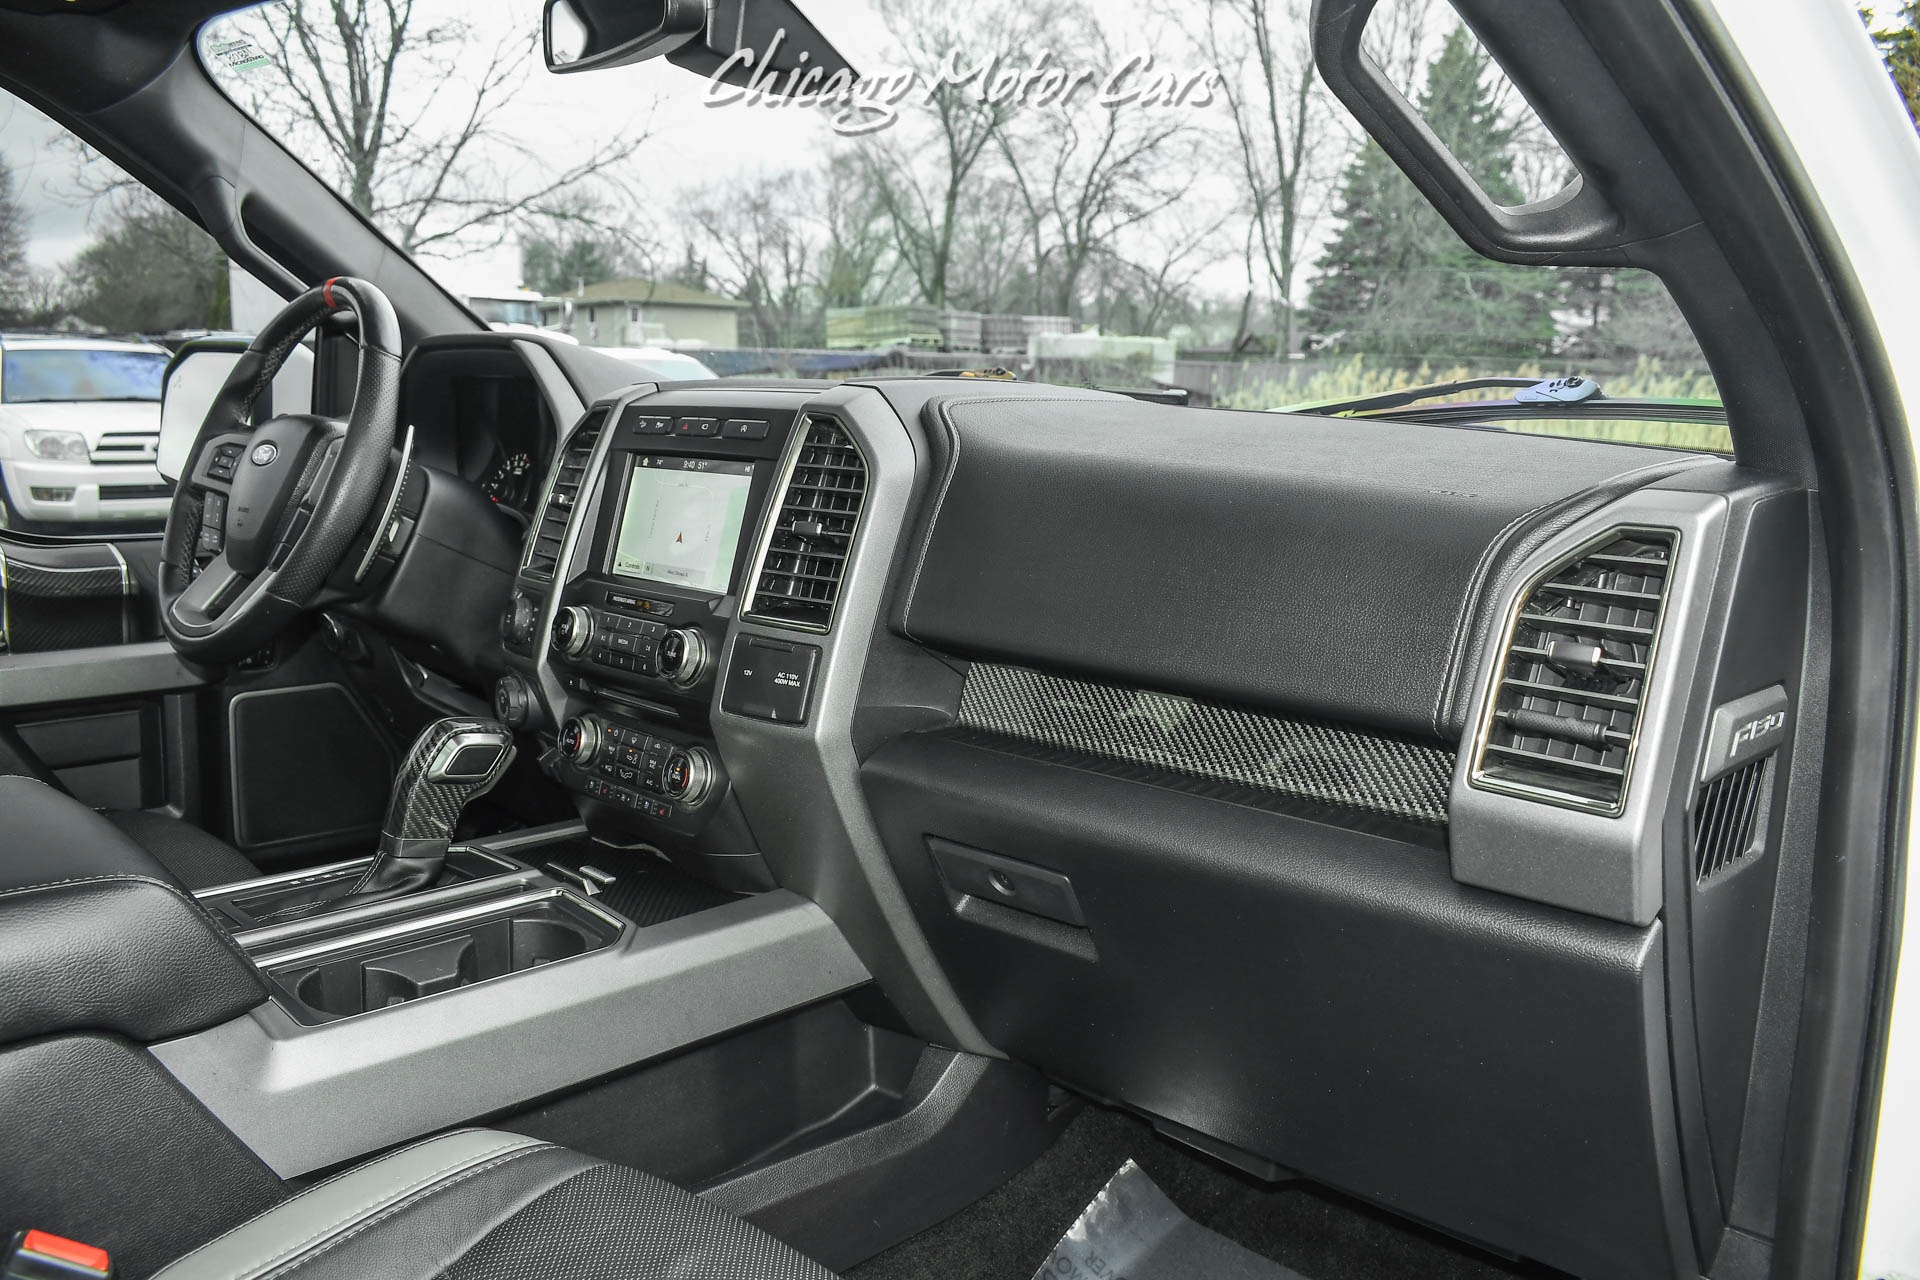 Used-2018-Ford-F-150-Raptor-Upgraded-Wheels-and-Bumper-Tech-Pkg-Loaded